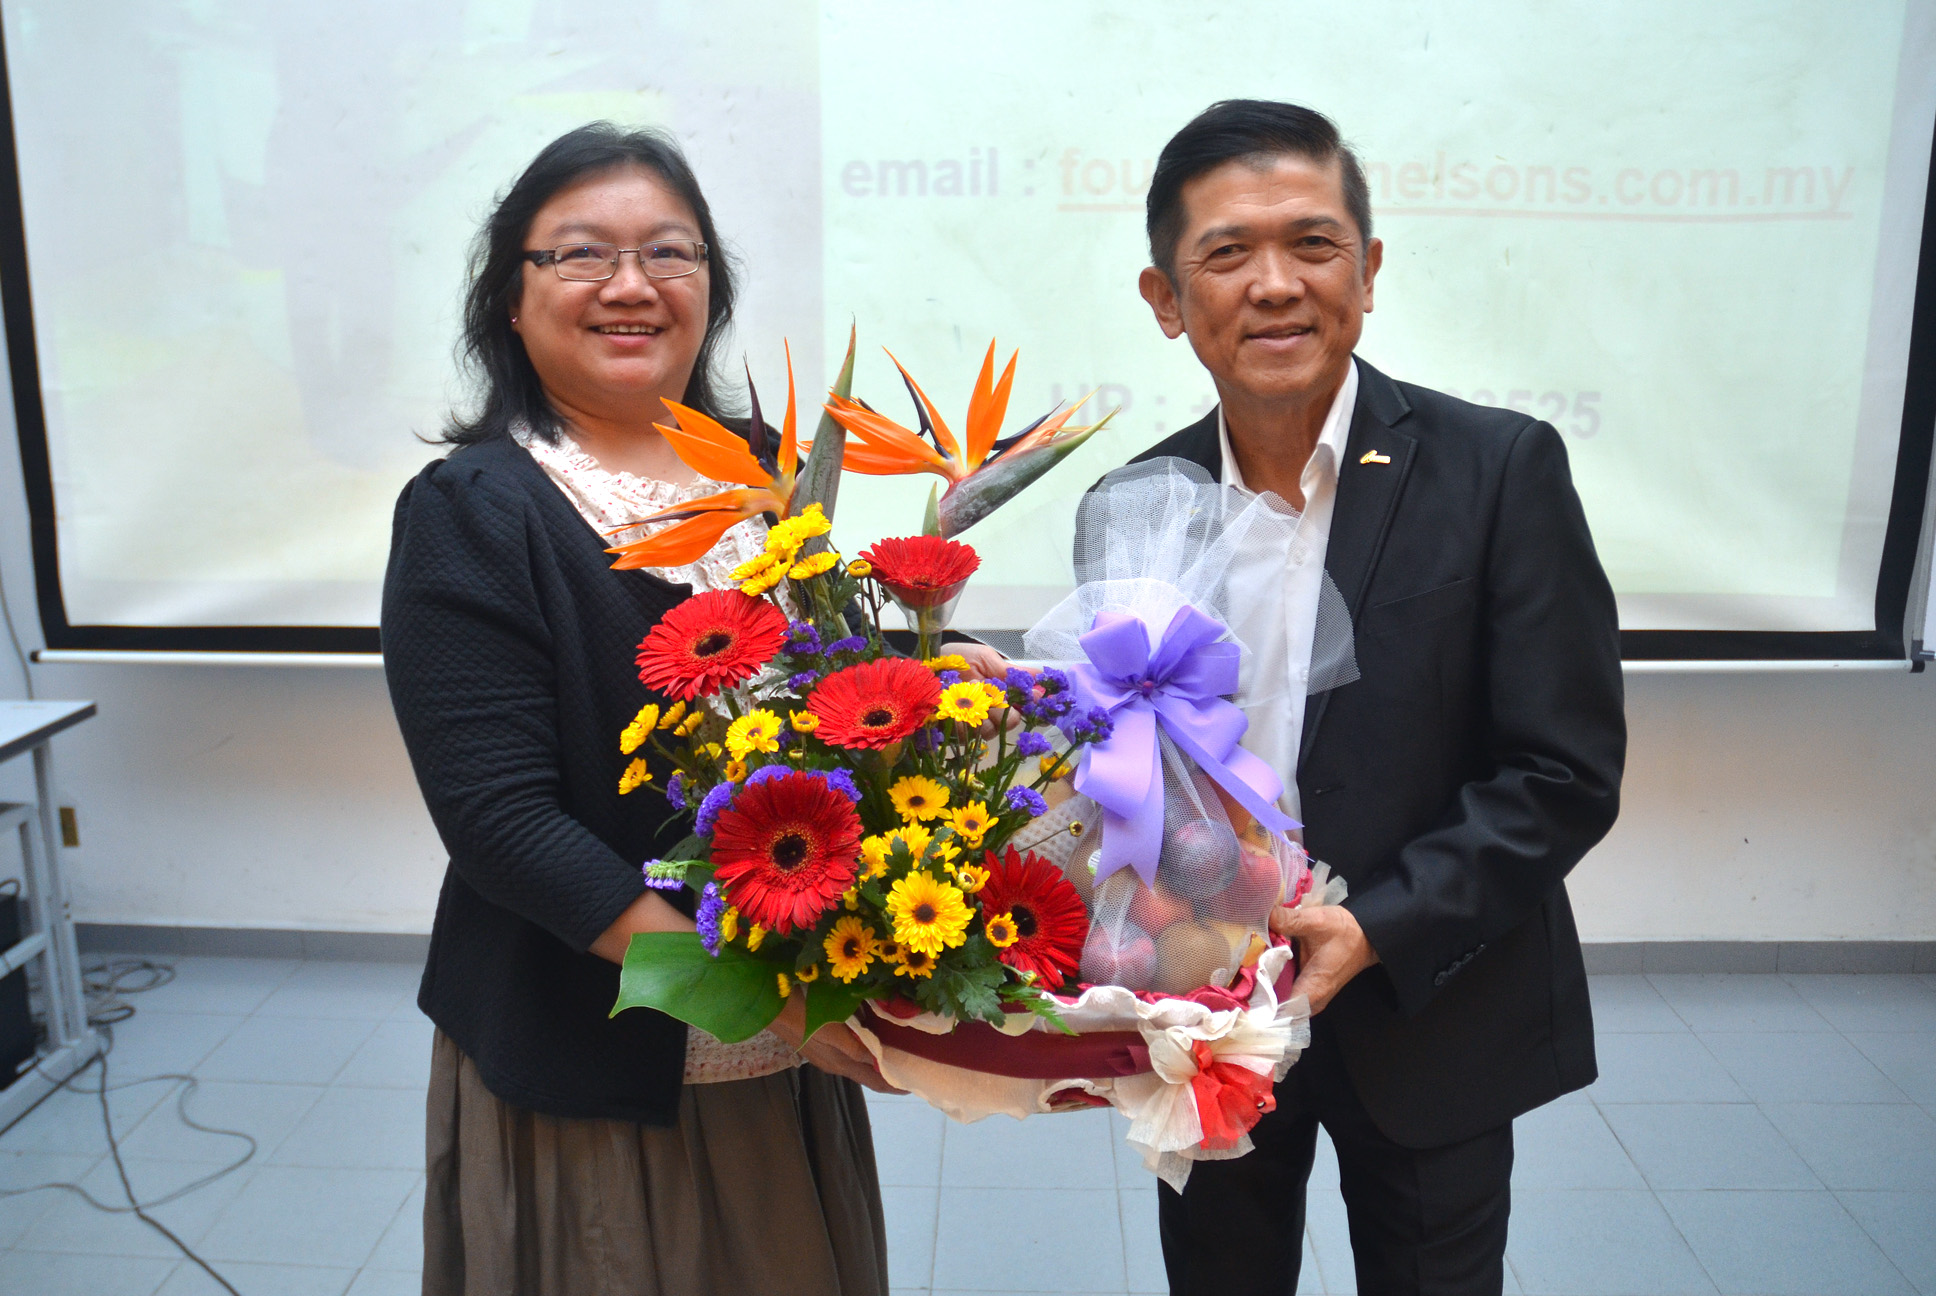 Dr Au Yong (left) presenting a token of appreciation to Datuk Seri Kwok